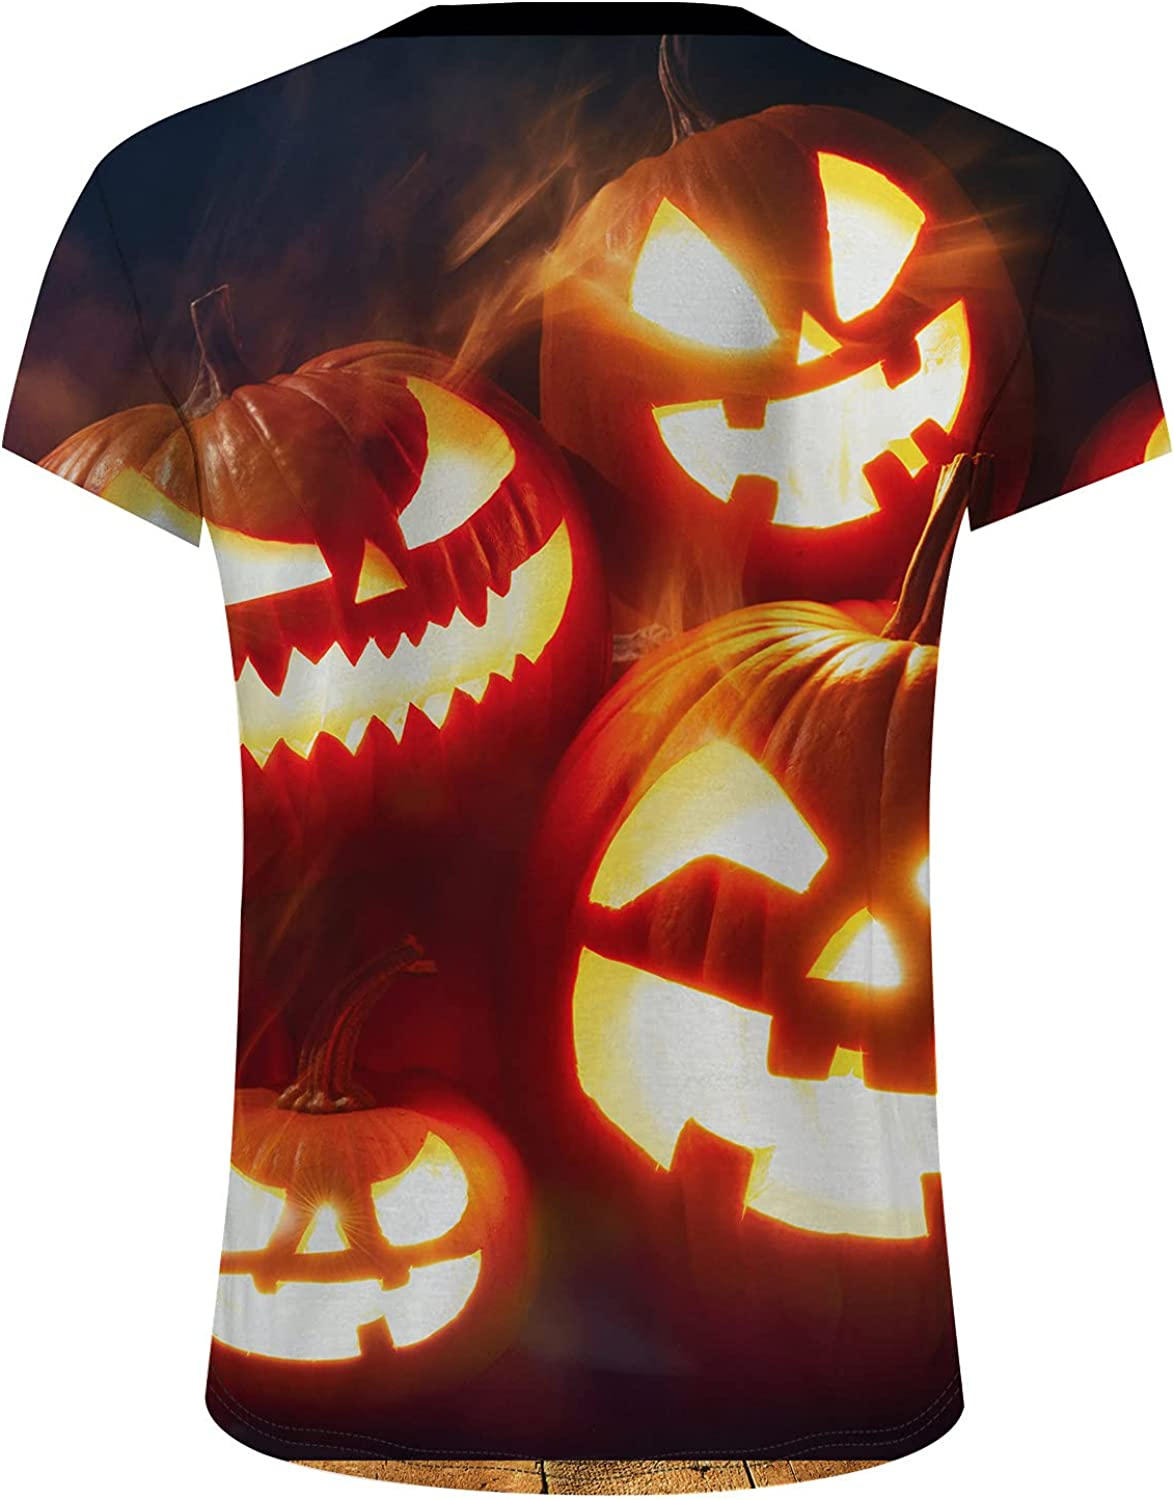 XXBR Halloween Jack-O-Lantern T-shirts for Mens, Funny 3D Pumpkin Printed Round Neck Tee Tops Athletic Casual Tshirt